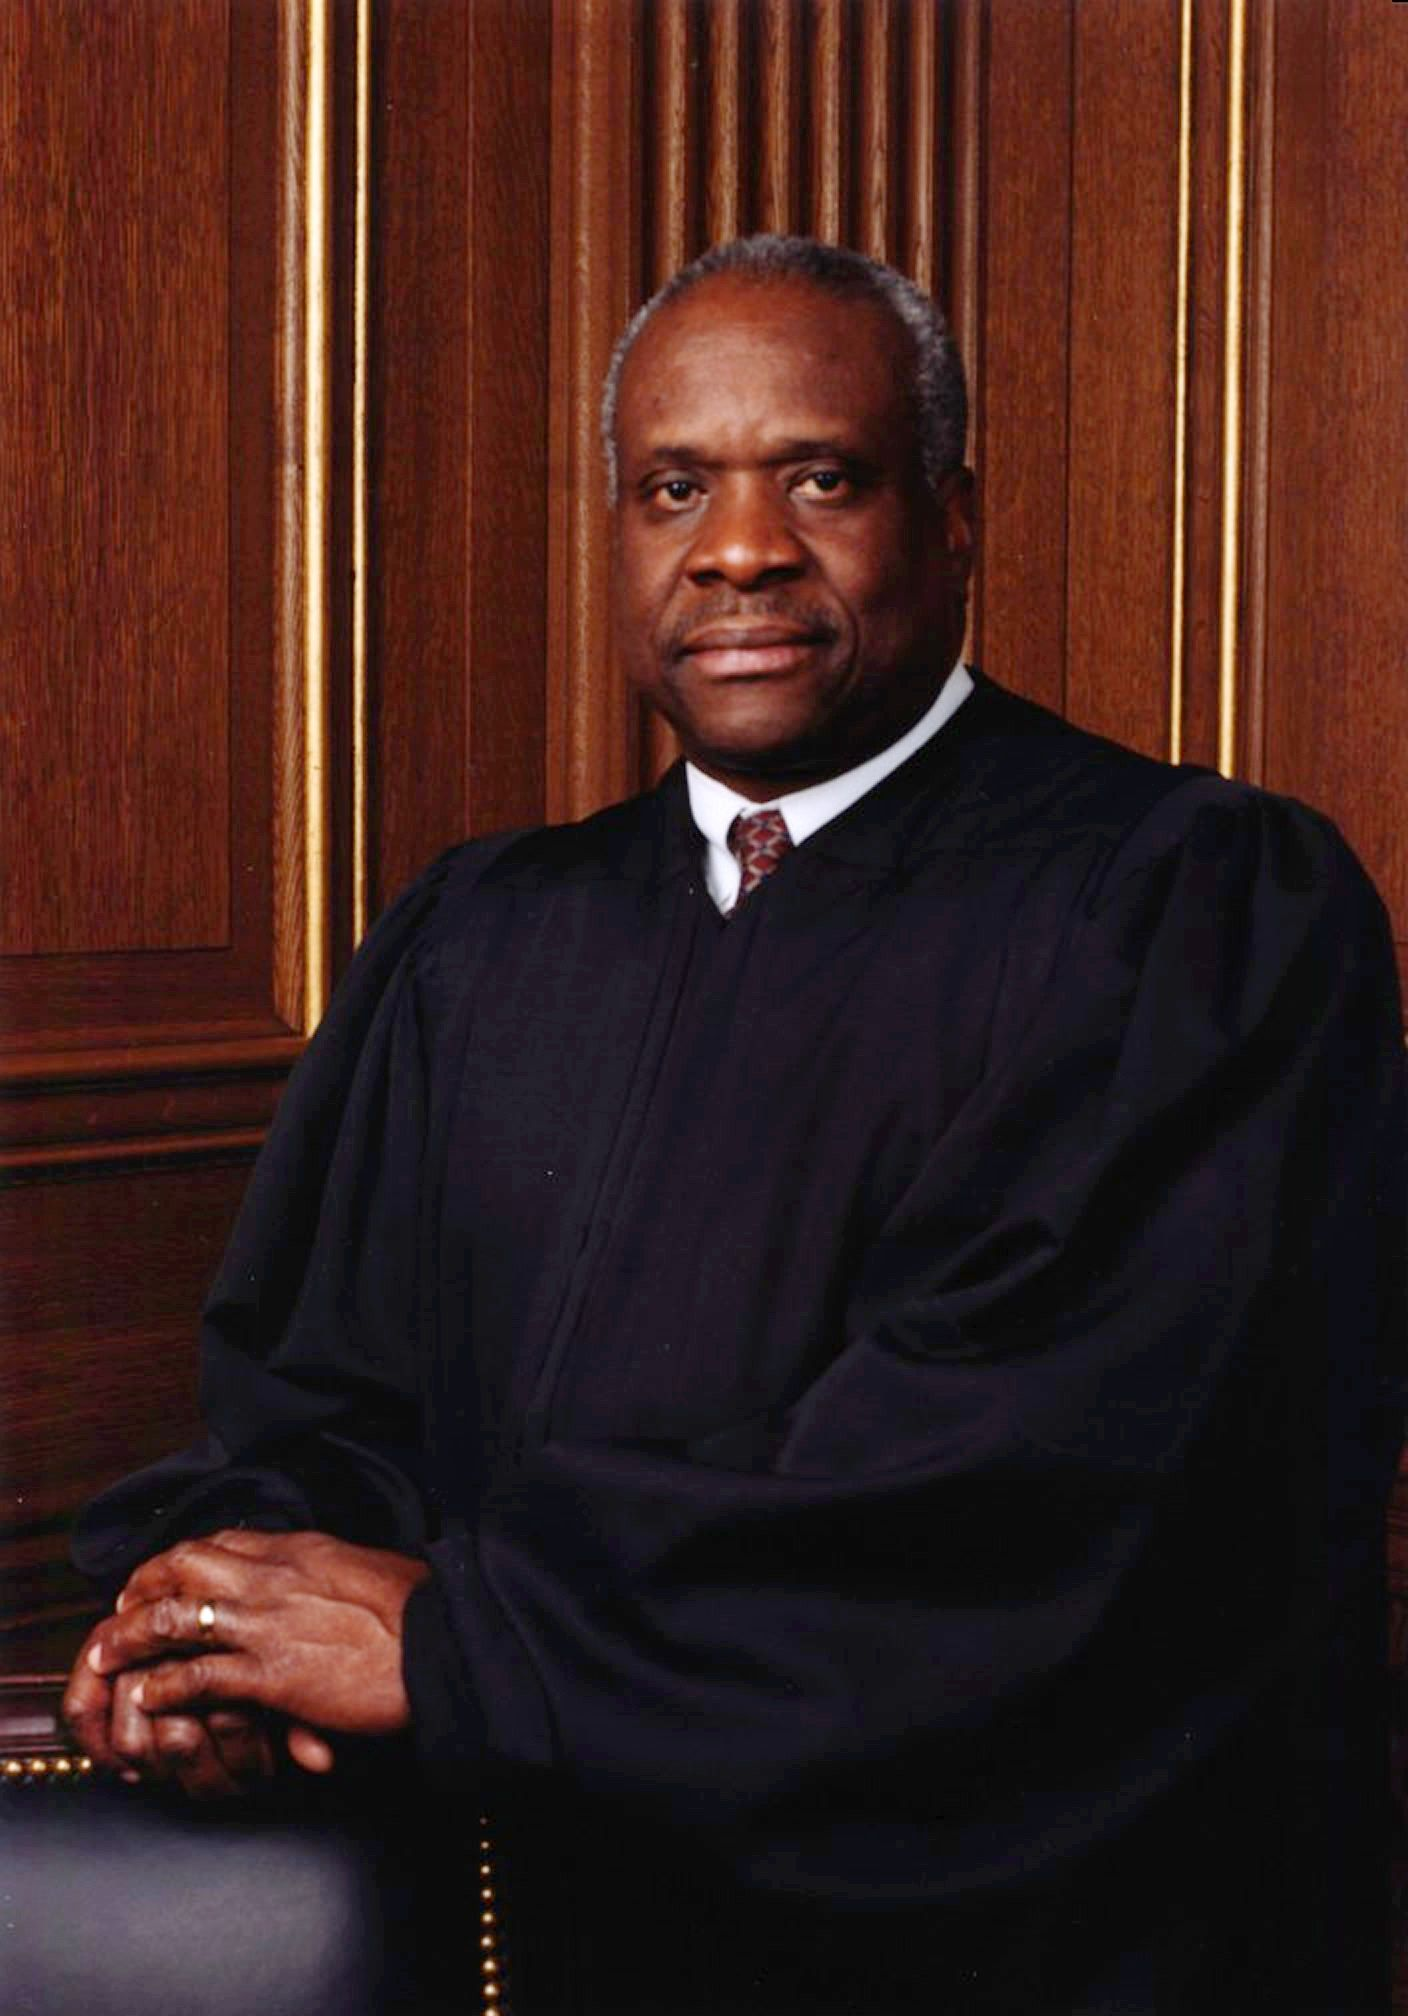 Clarence Thomas official